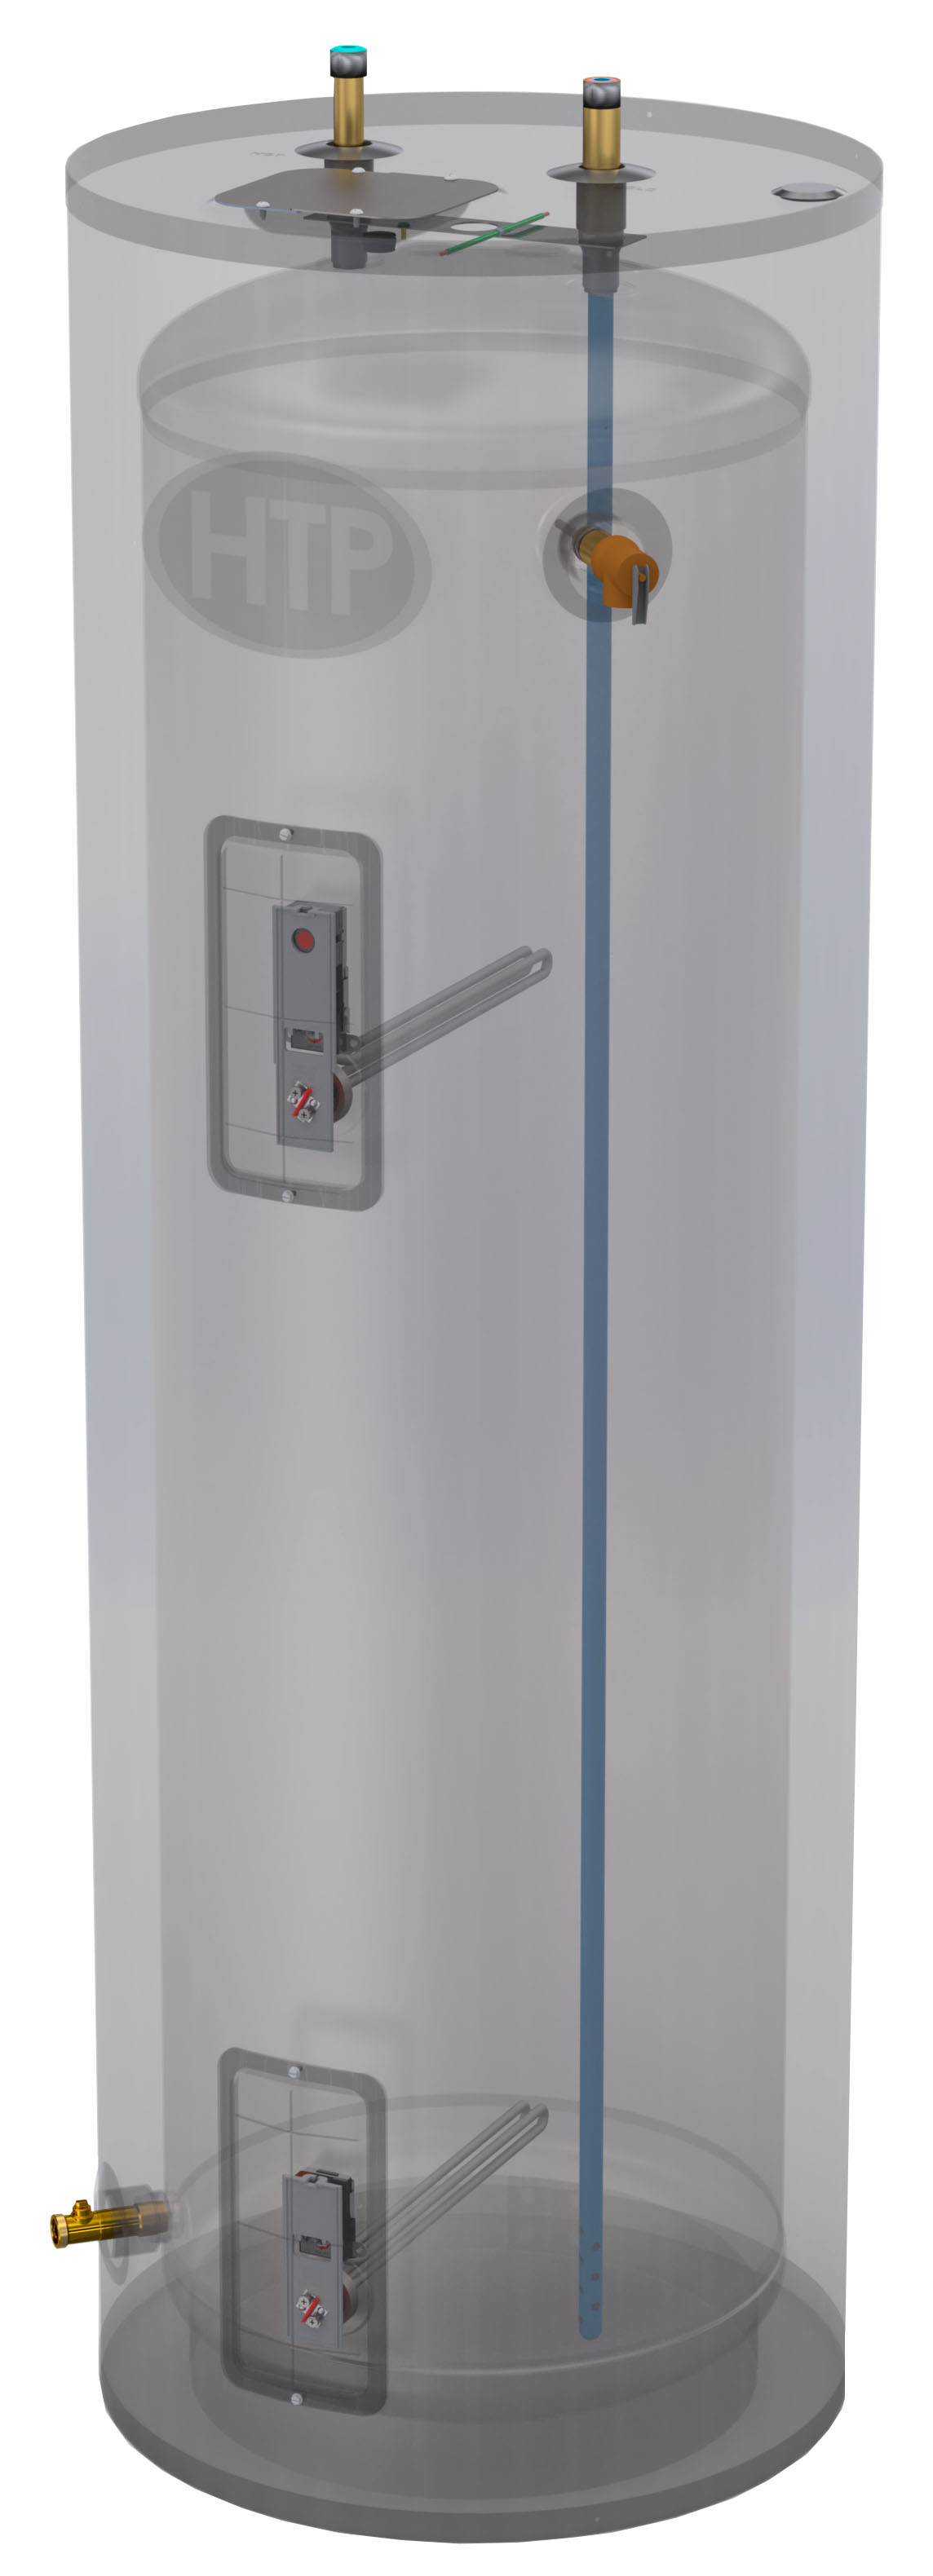 Everlast Light Duty Commercial Electric Water Heater